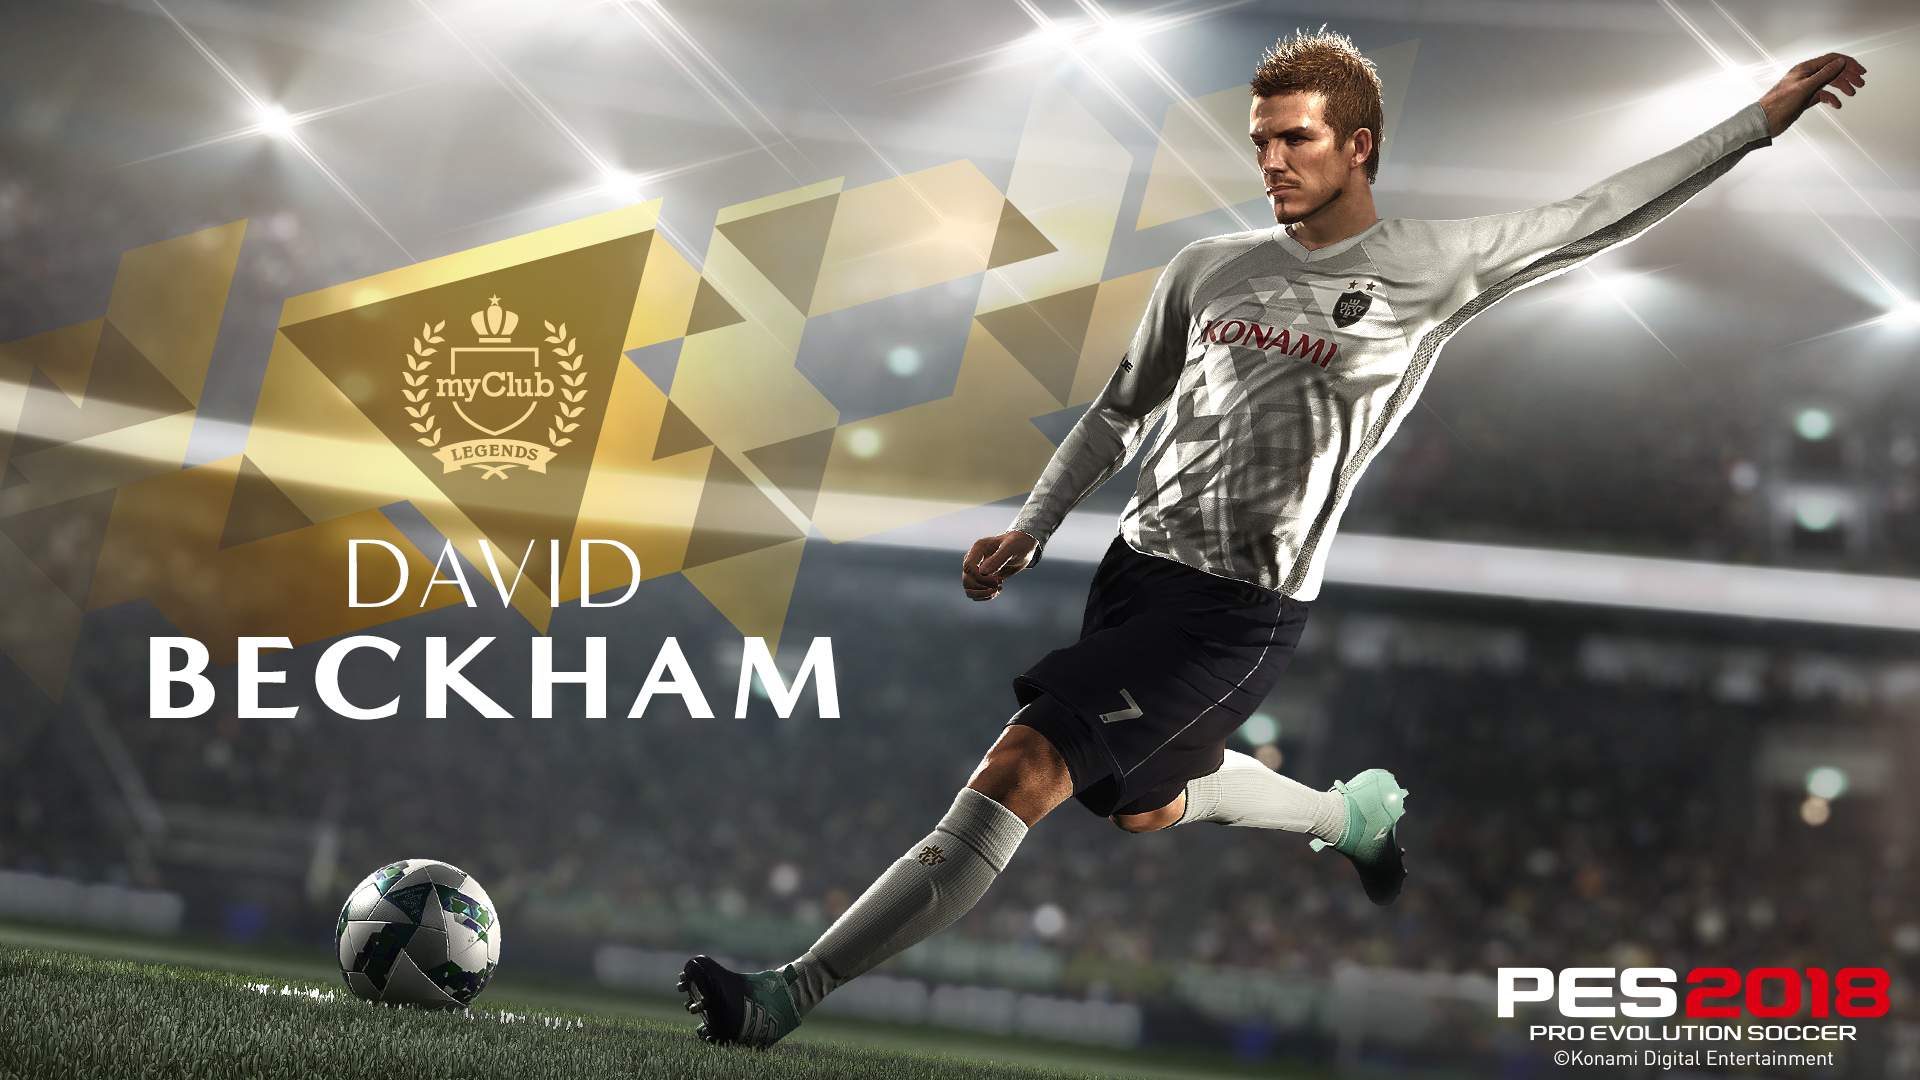 David Beckham estará en exclusiva en PES 2018